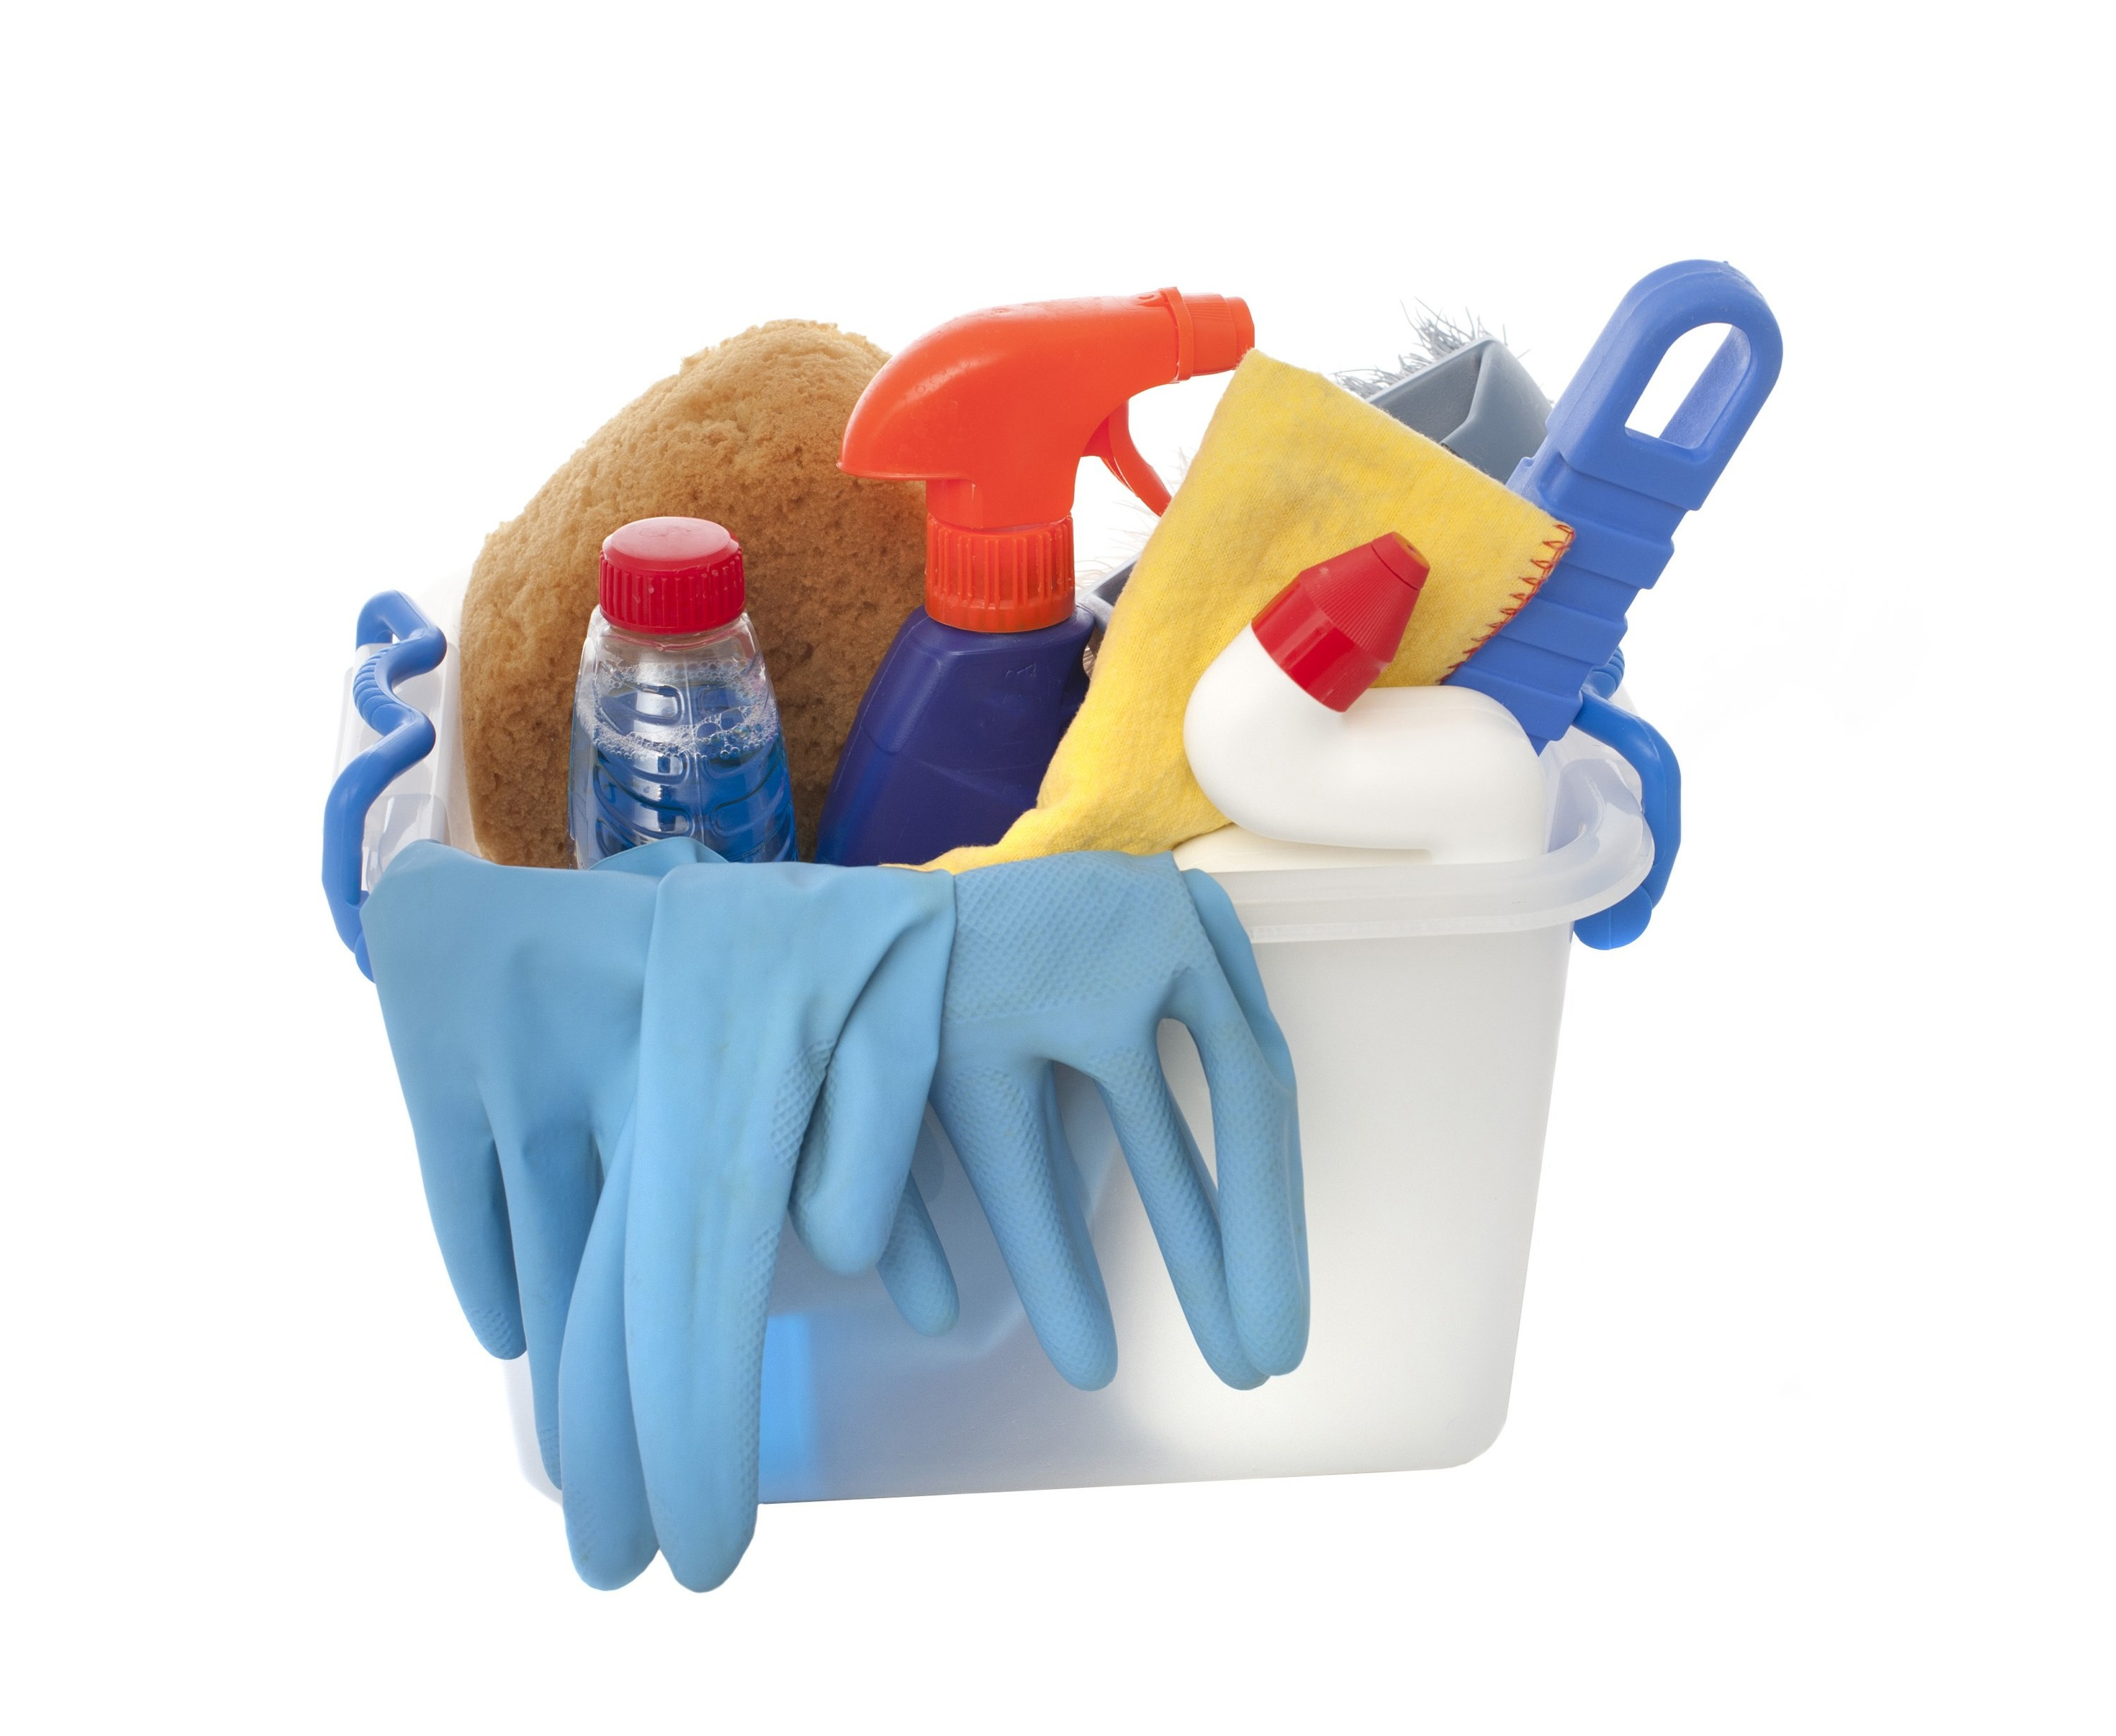 Free image of cleaning products